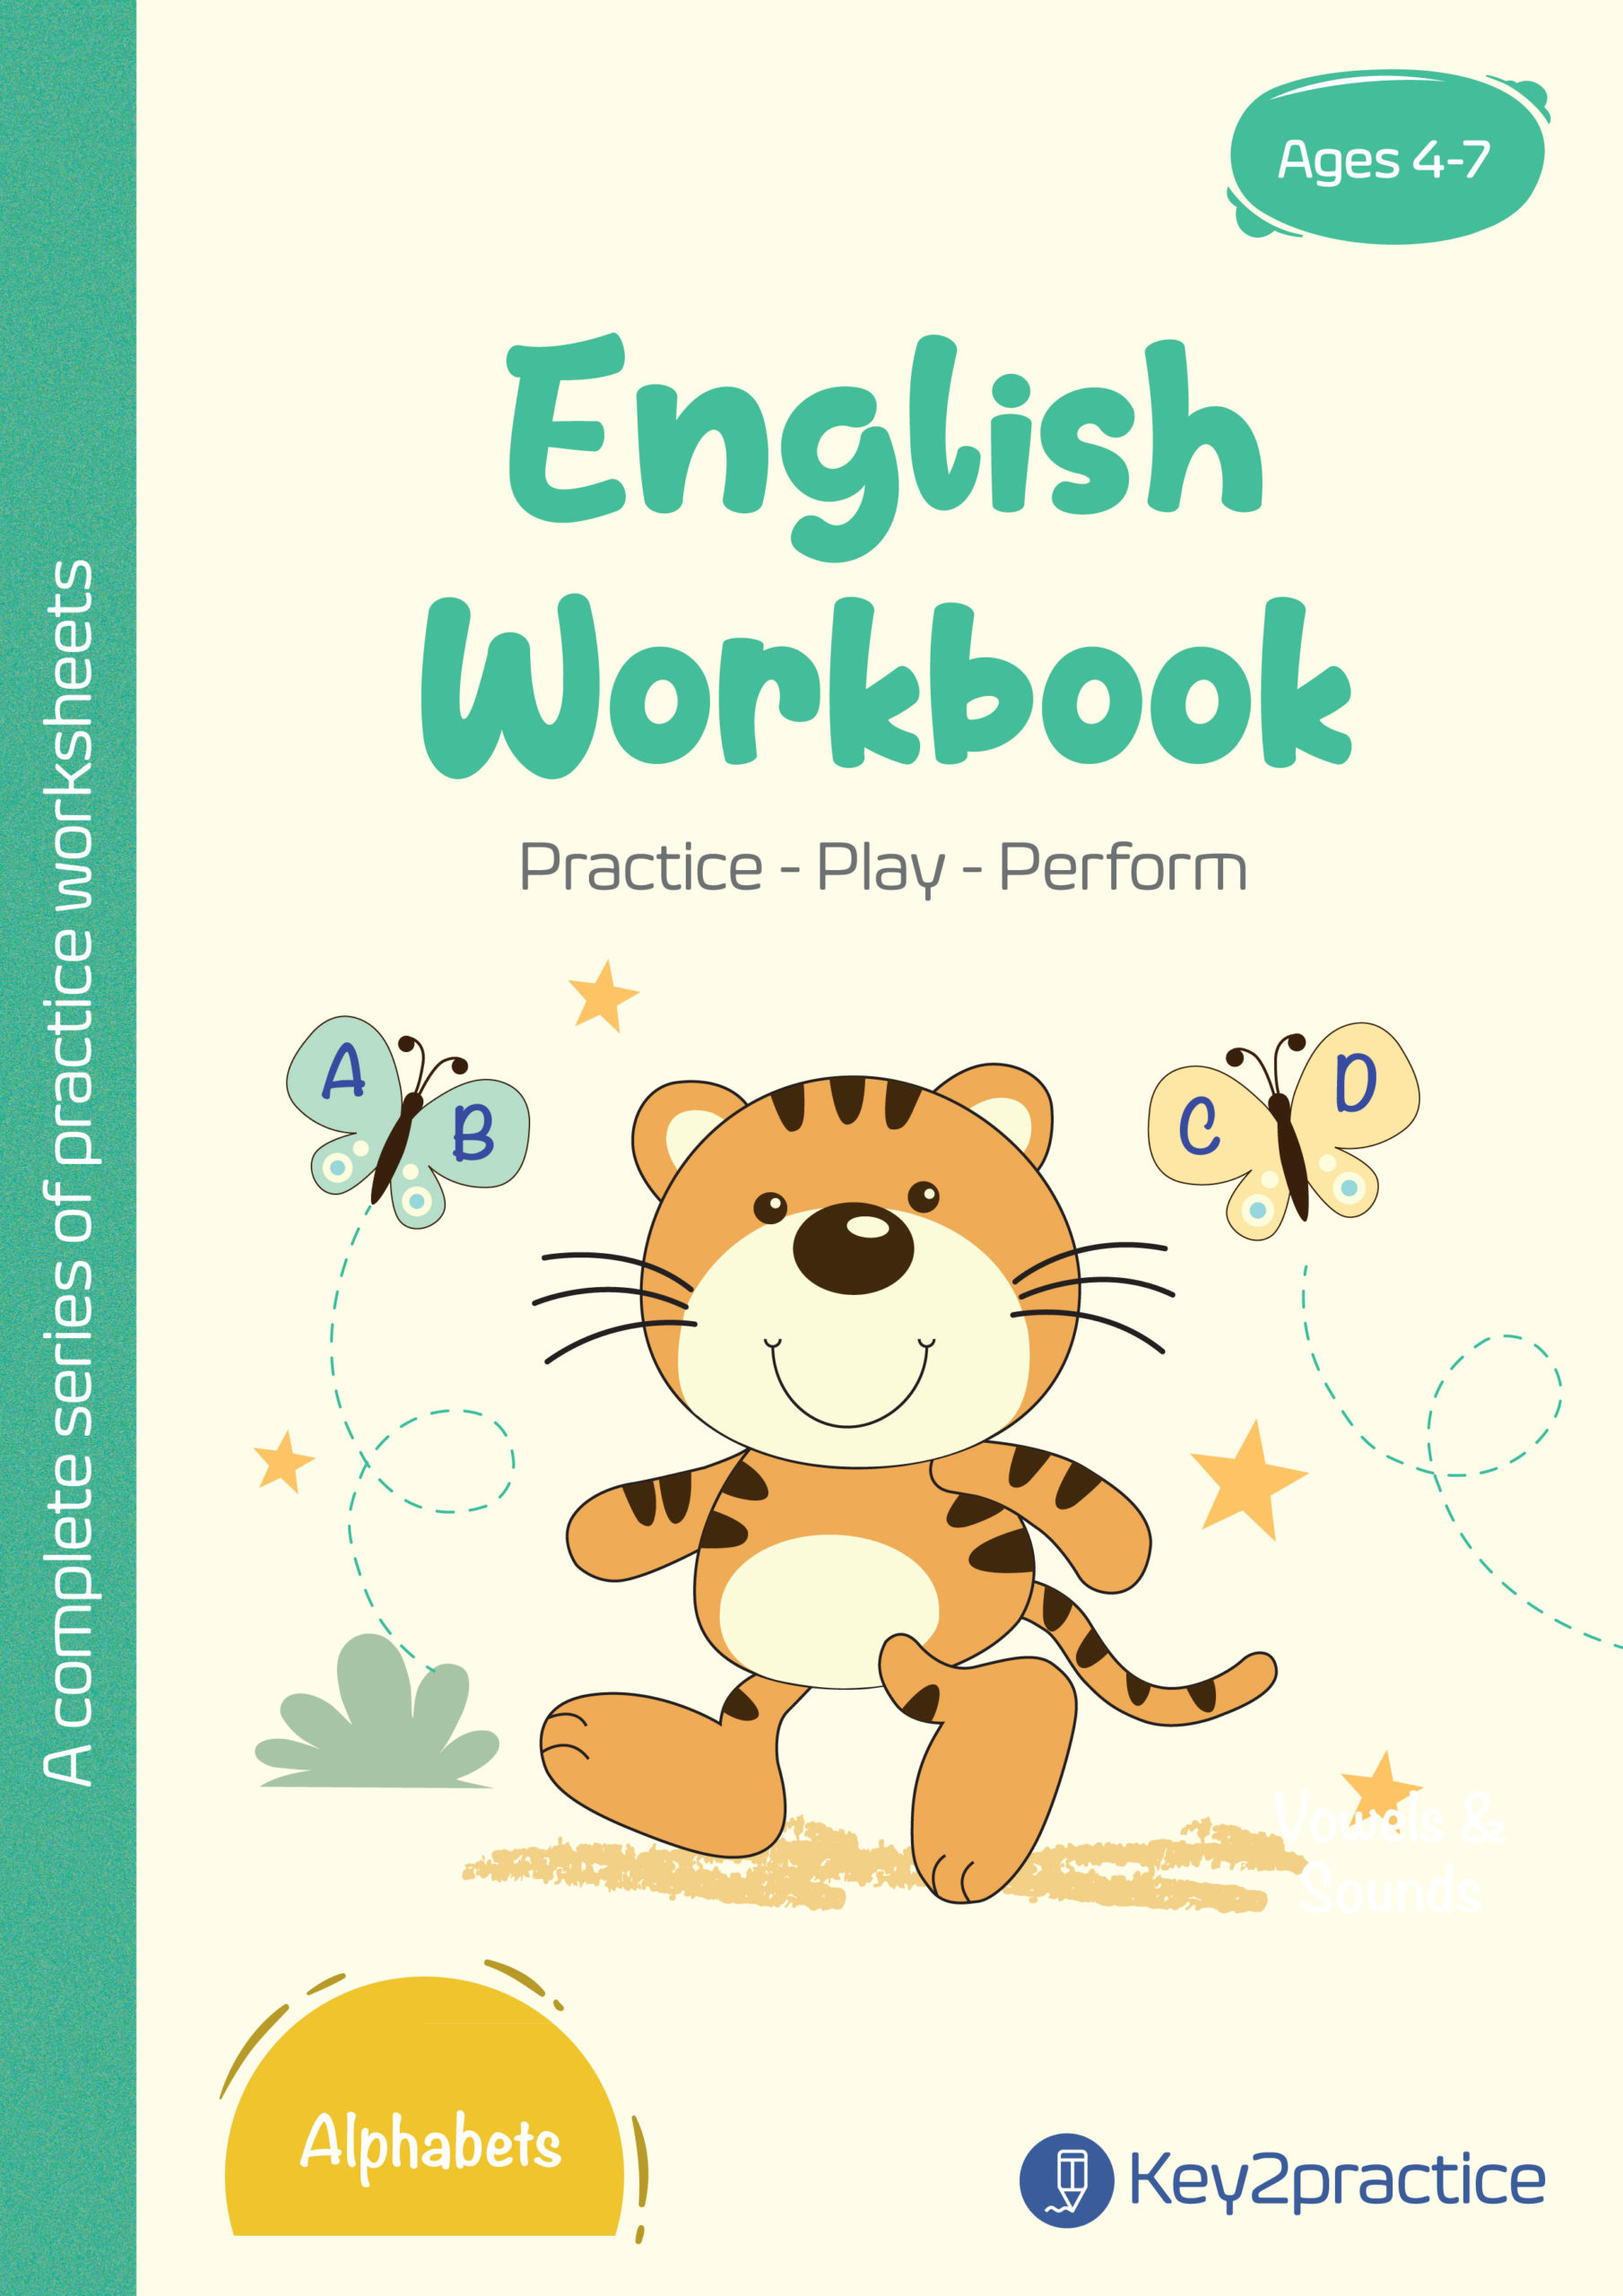 Worksheets on Alphabets Pre-primary - key2practice Workbooks [ 2560 x 1810 Pixel ]